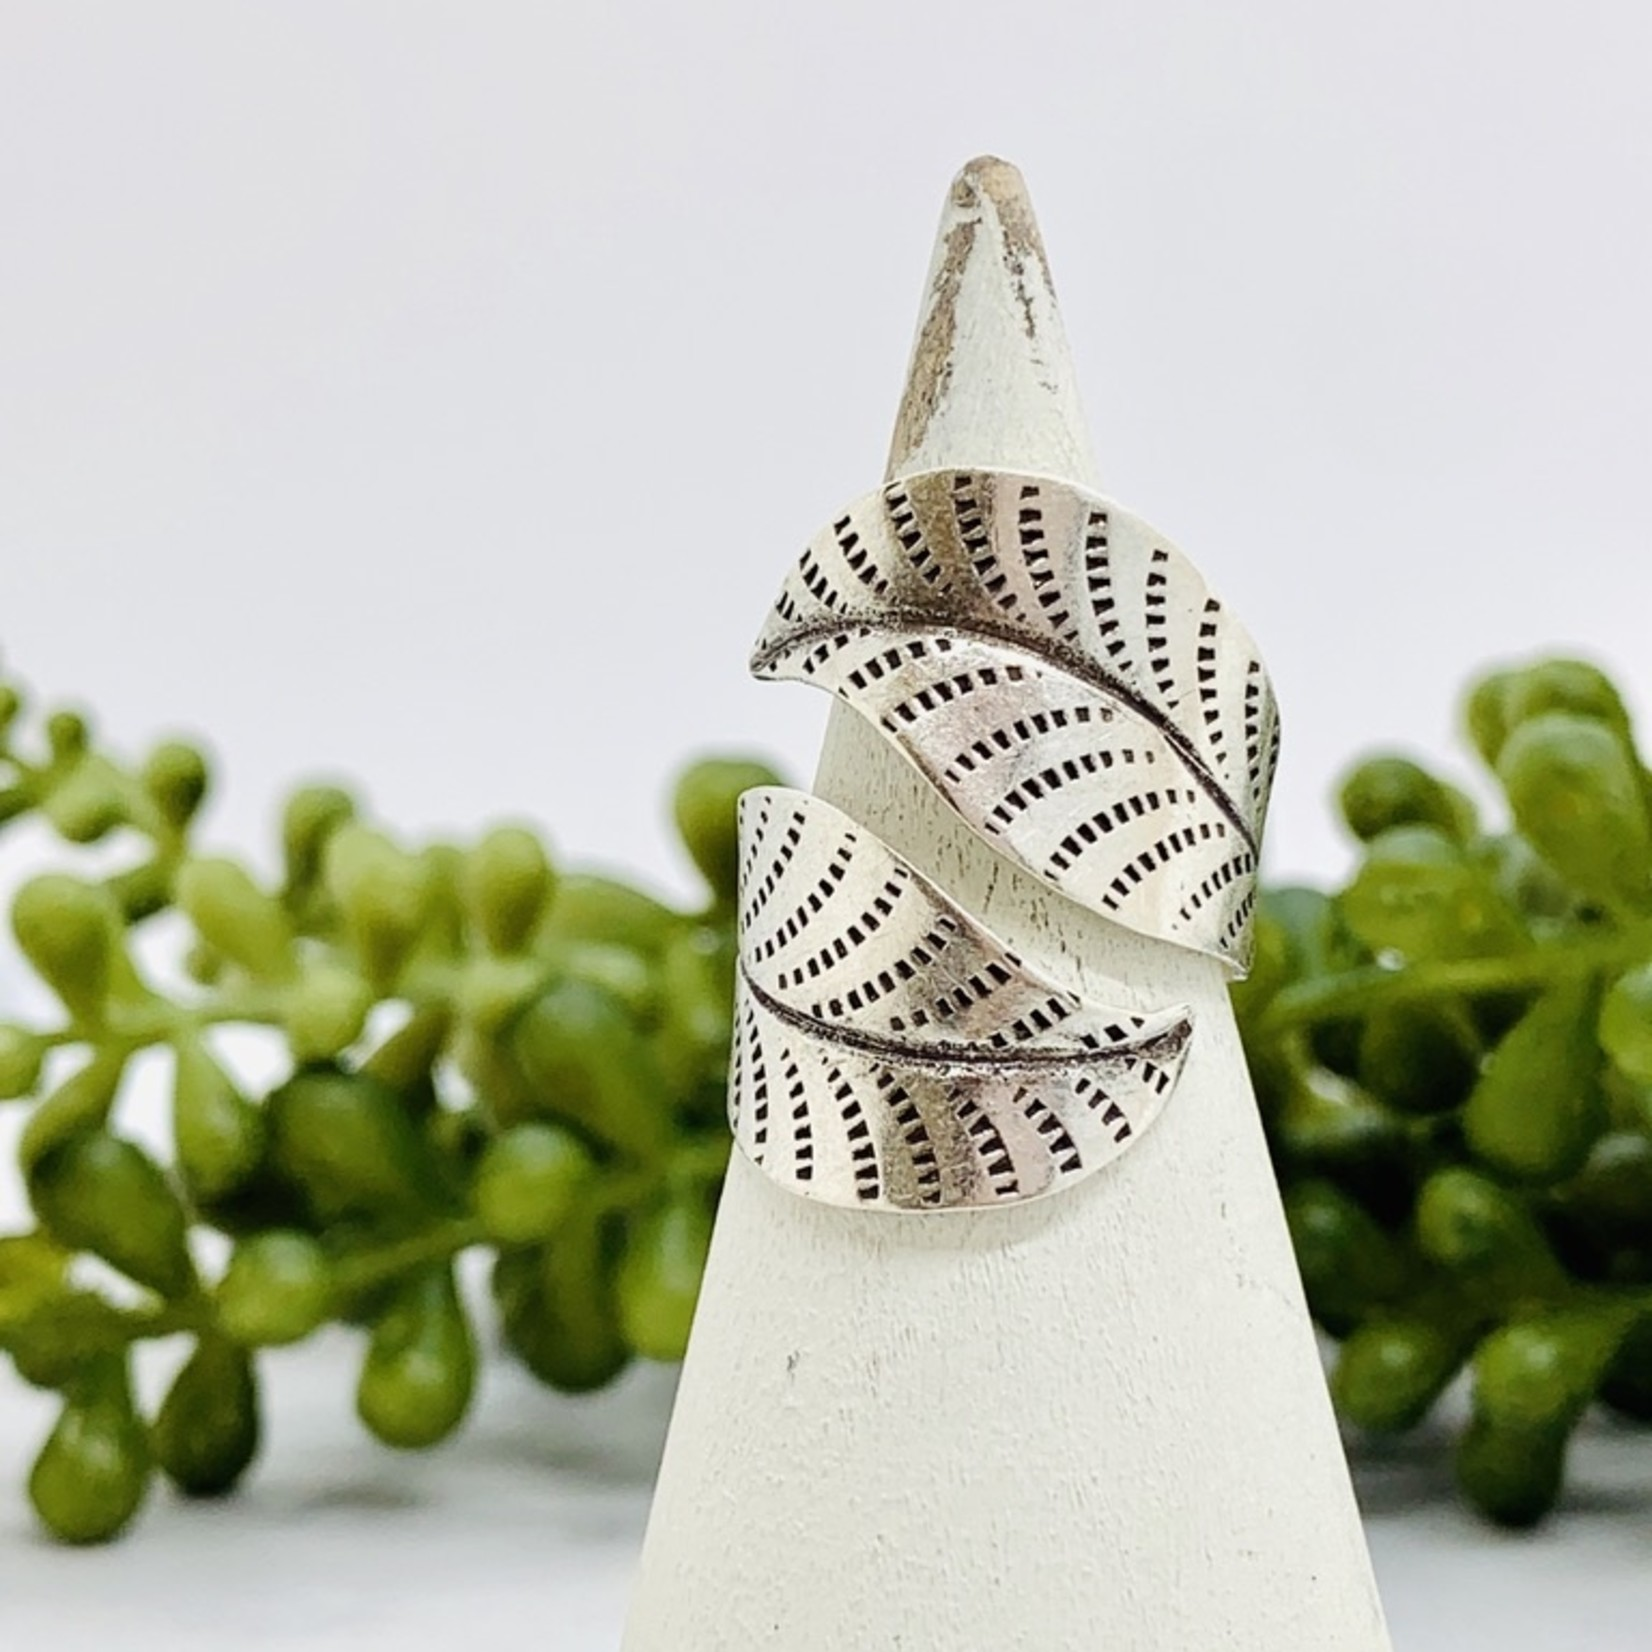 Anantara Silver Two Leaves Ring